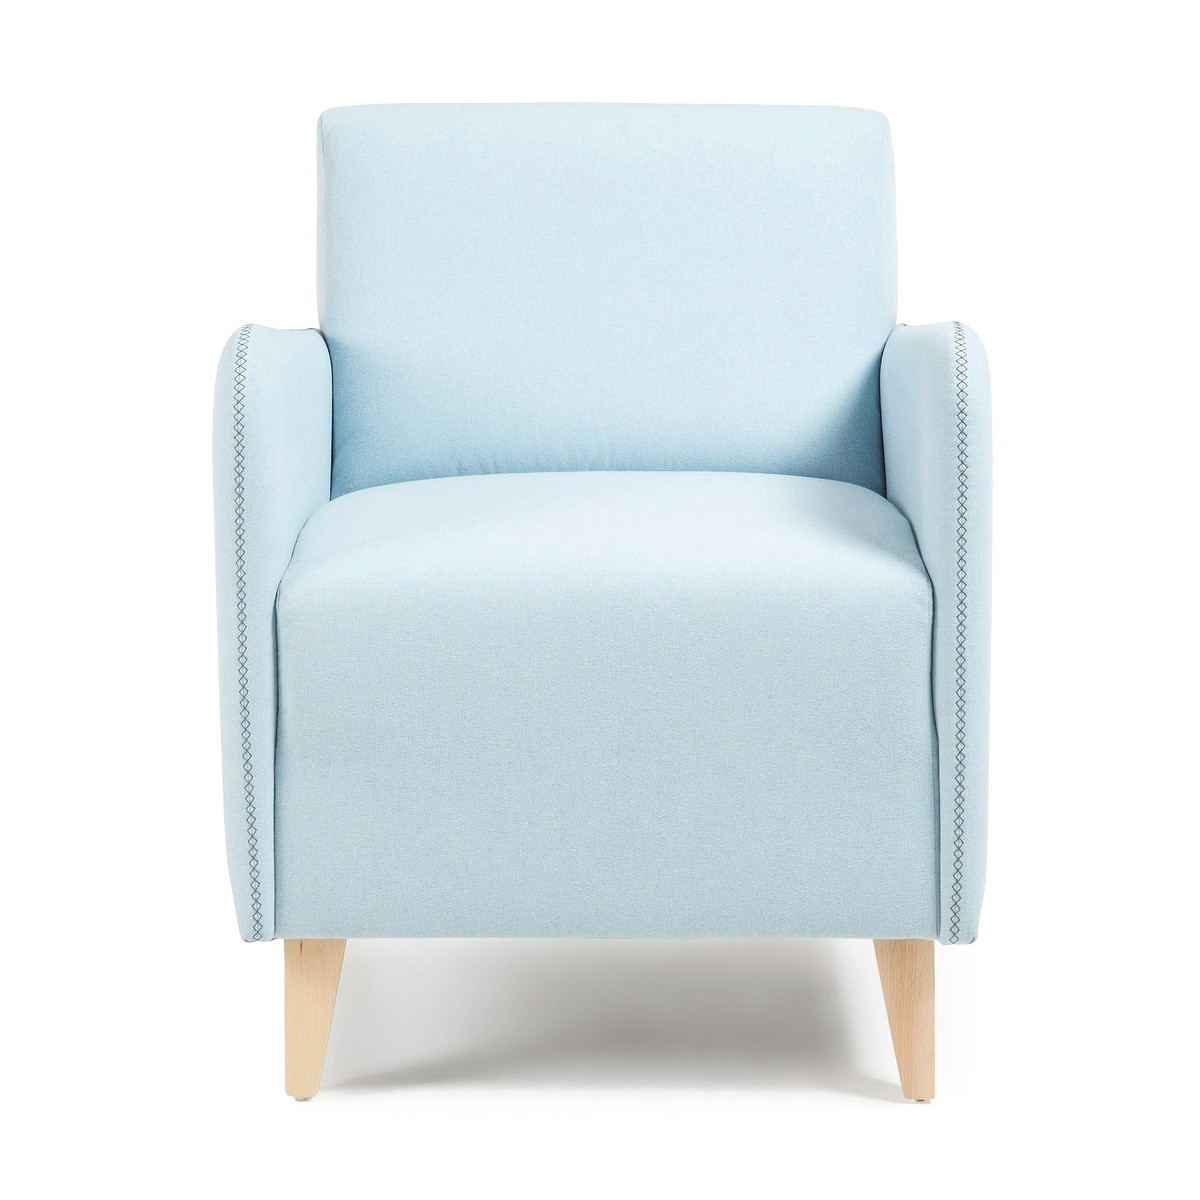 Nicola Fabric Lounge Armchair, Light Blue